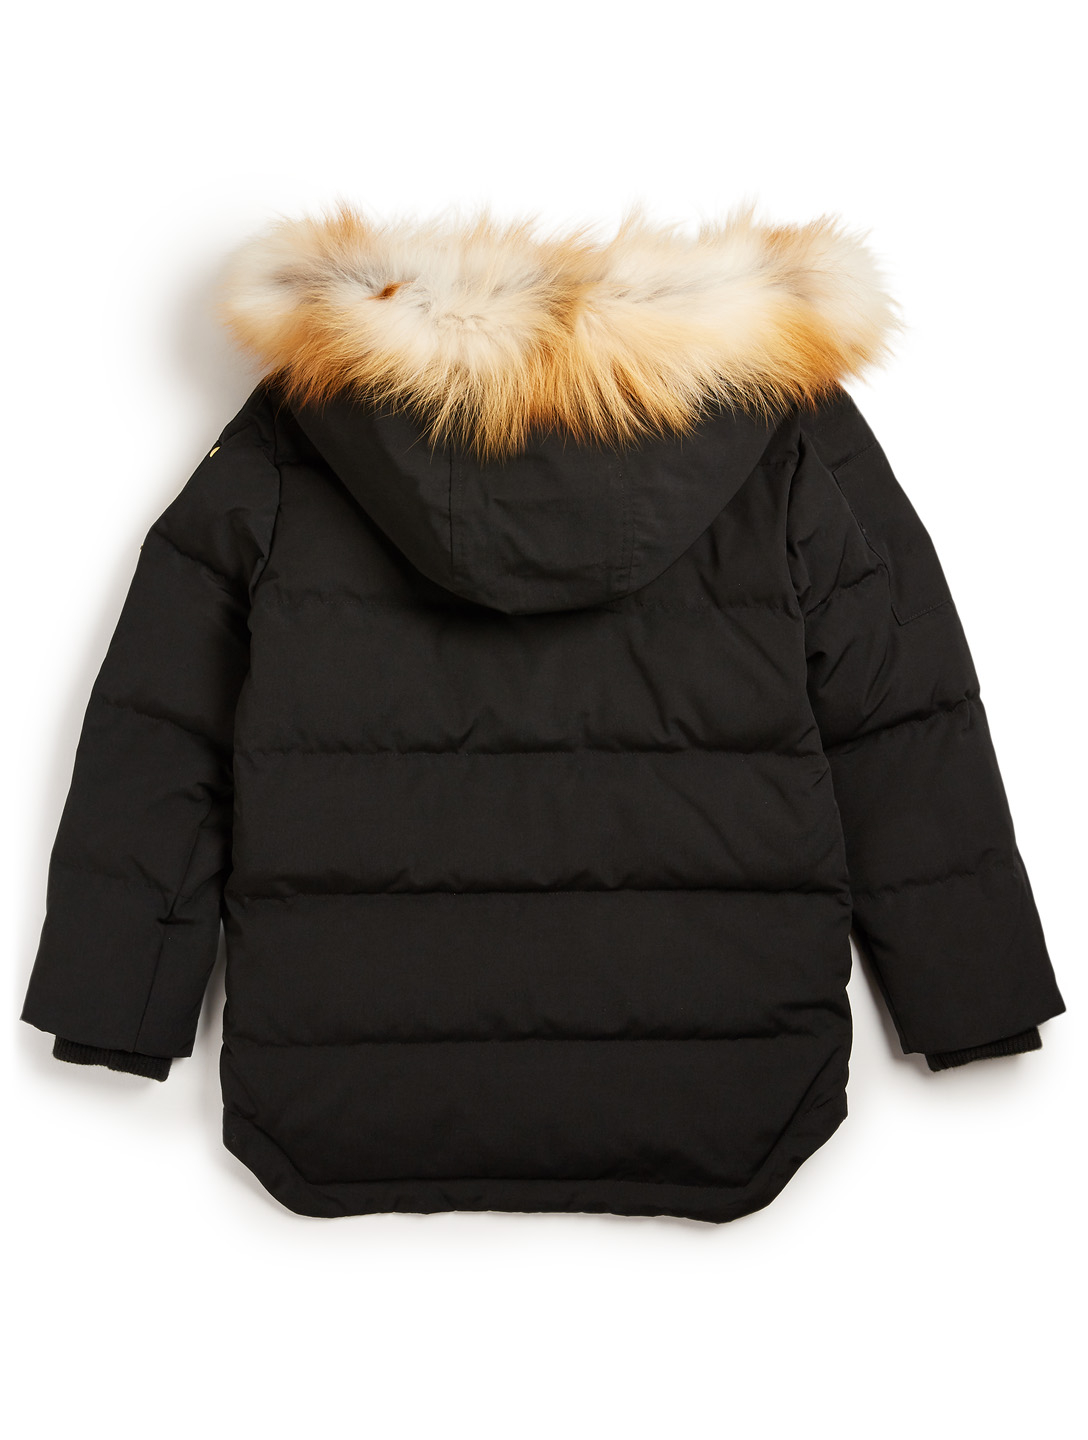 MOOSE KNUCKLES Youth Premium 3Q Down Coat With Fur Hood Kids Black